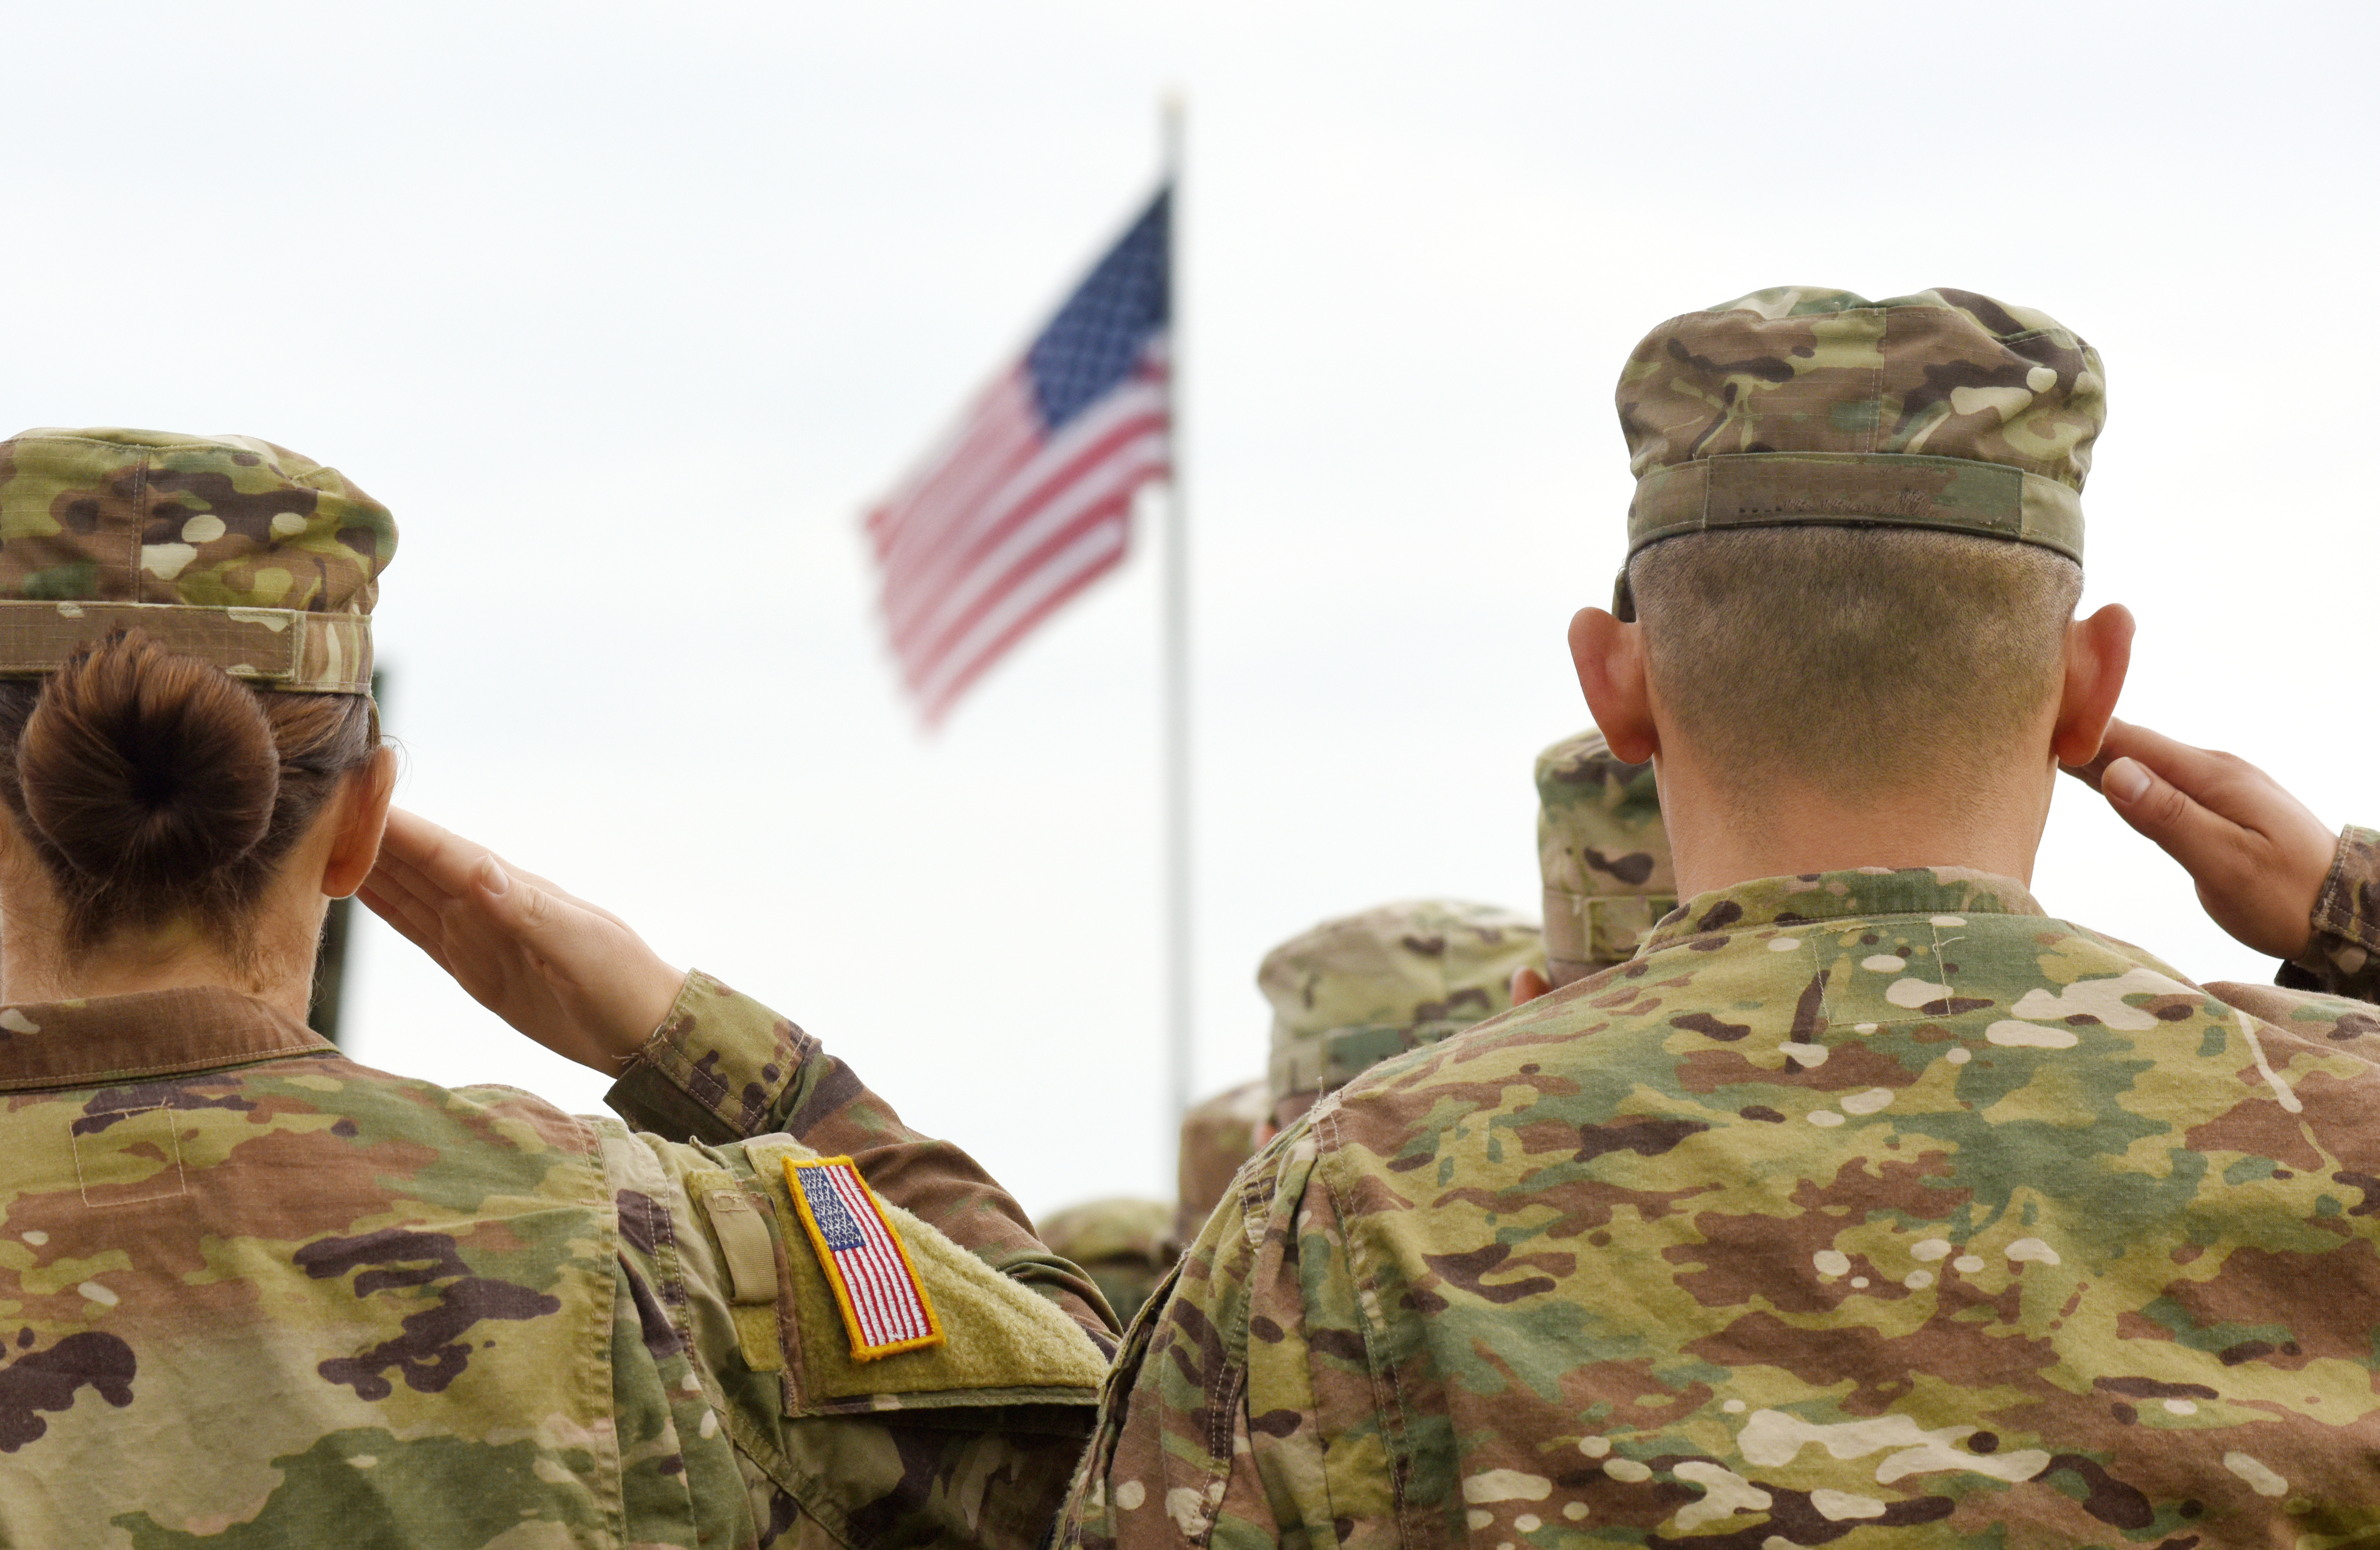 Soldiers saluting flag, The Patriots Connection at RSF Foundation